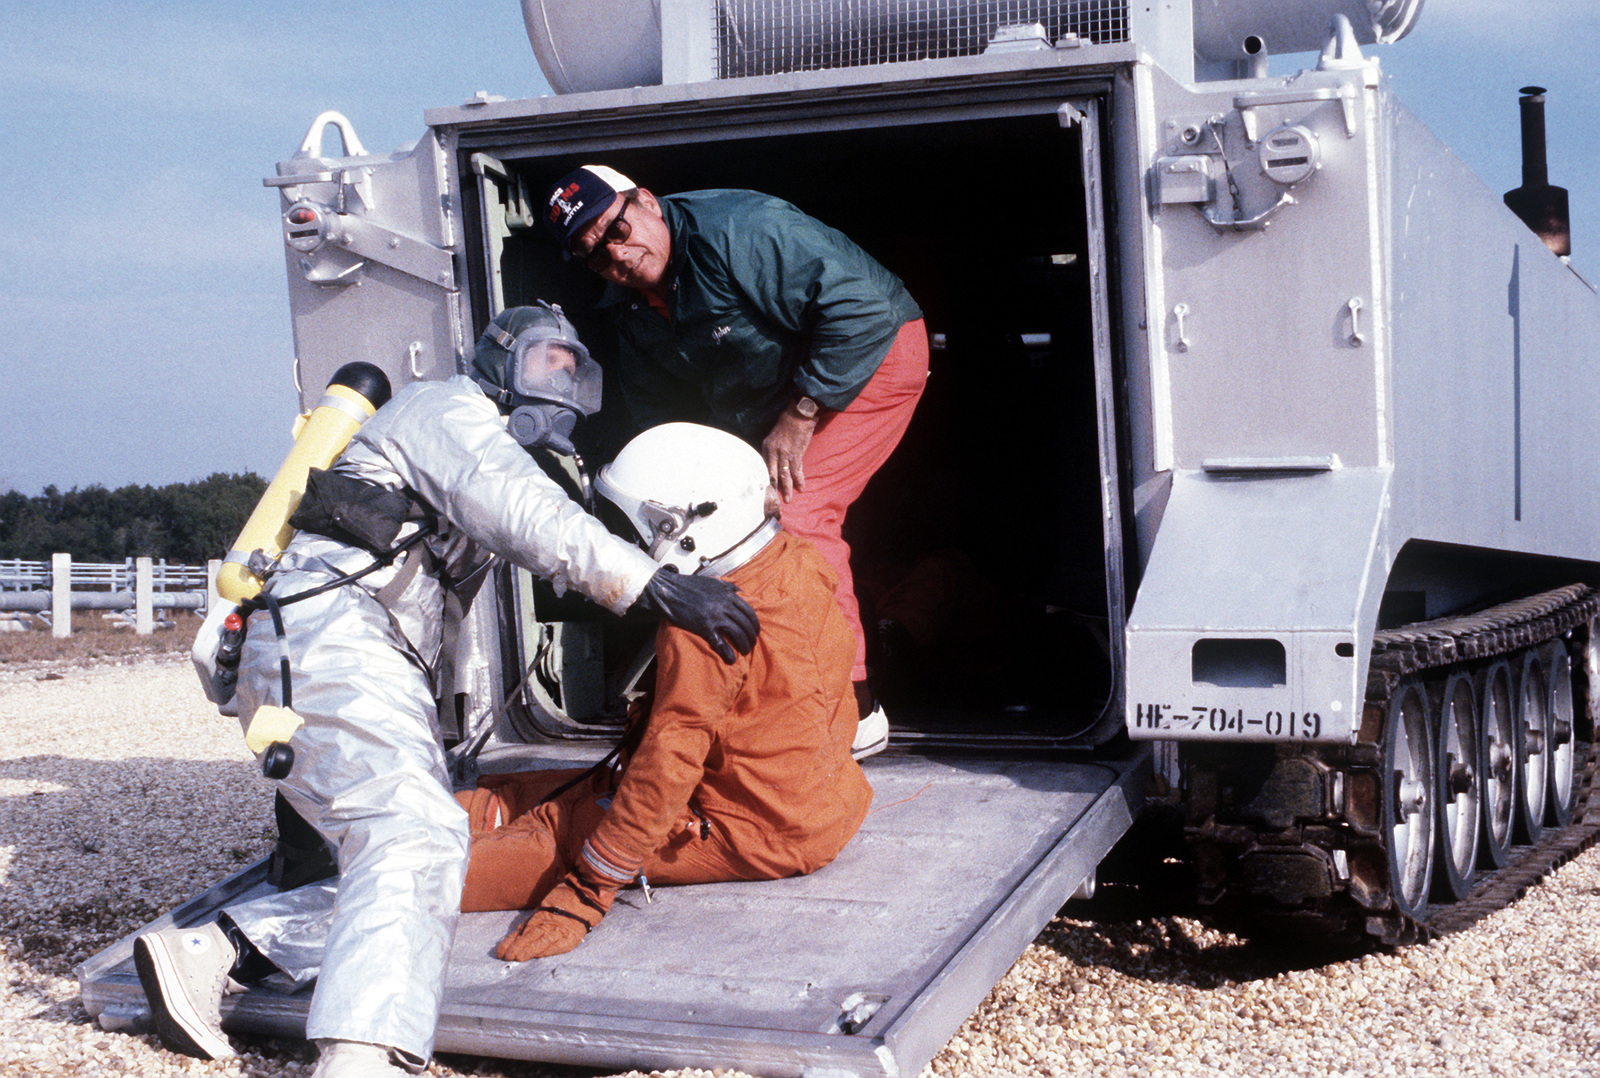 Two pararescuemen remove an astronaut mannequin from the XM-1 astronaut recovery tank and place it on a stretcher during a space shuttle rescue exercise. The exercise is one of several planned to optimize rescue and recovery operations for the space shuttle Columbia